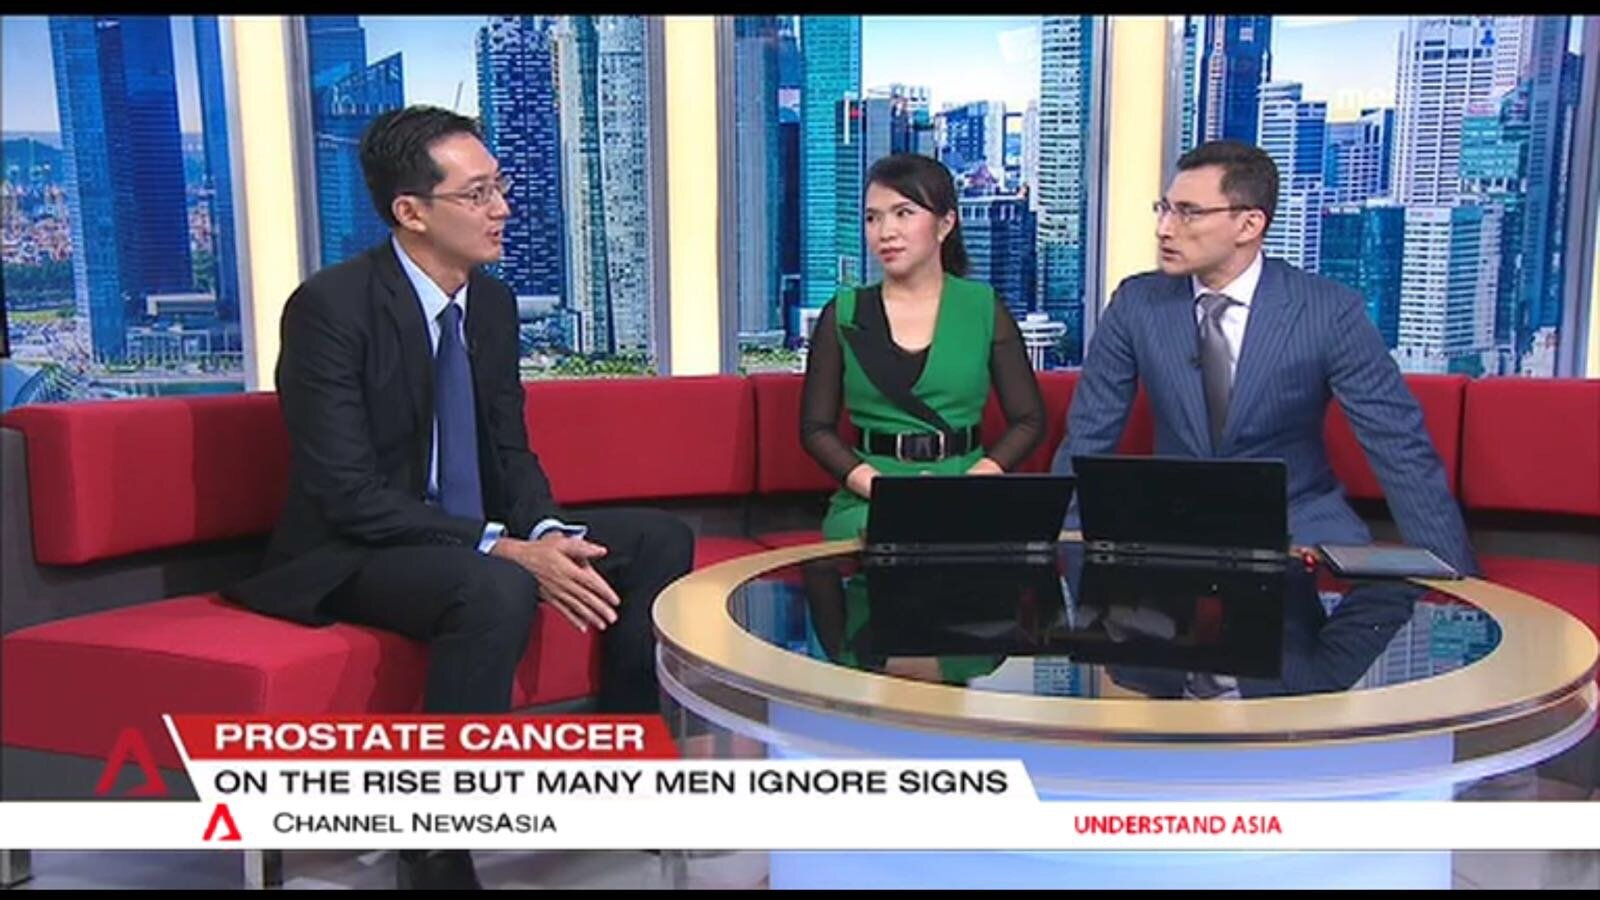 Chairman of Singapore Cancer Society Prostate Cancer Awareness Campaign